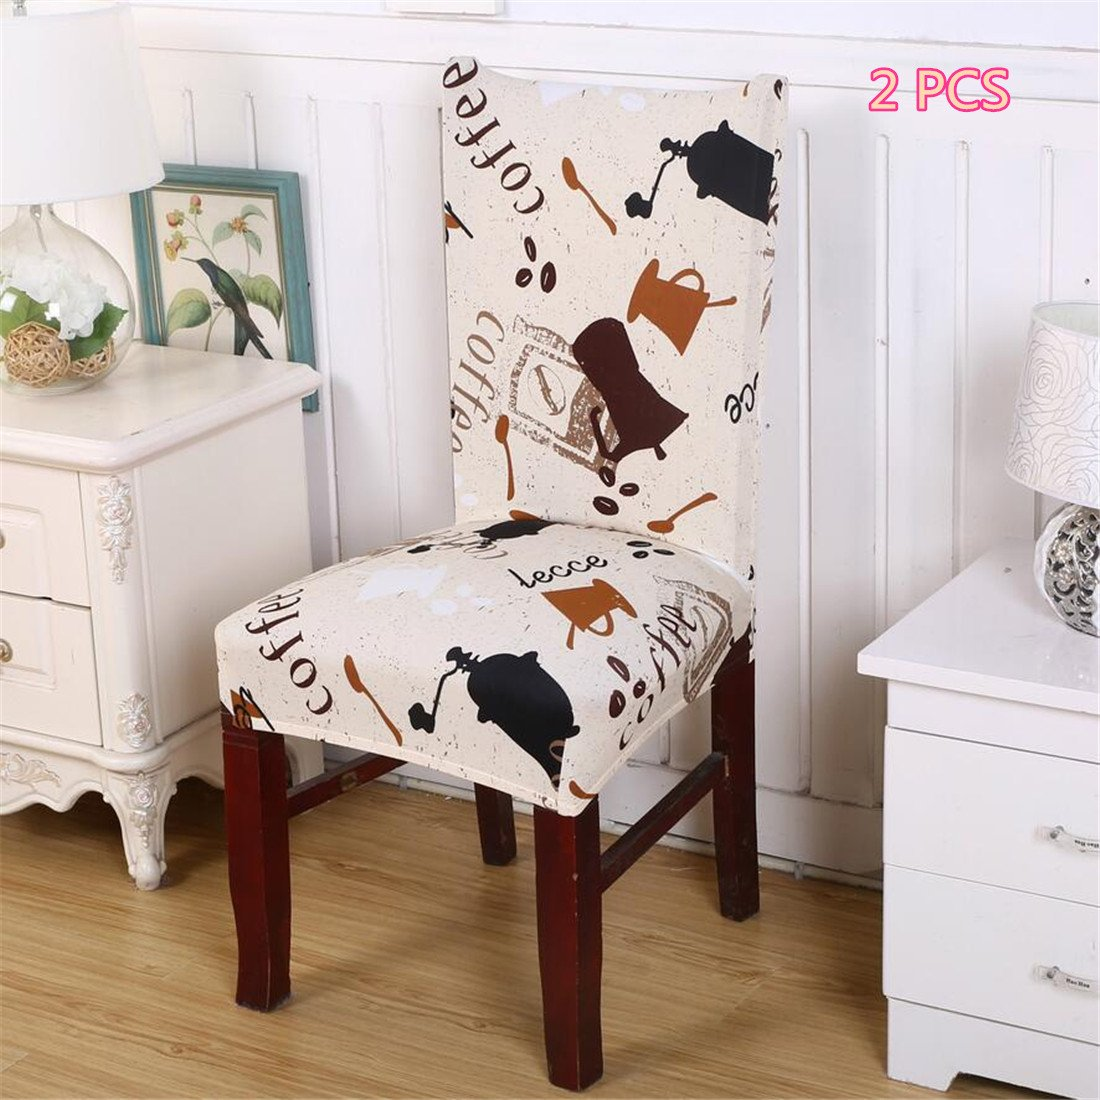 2PCS/4PCS Dining Room Stretch Printed Chair Cover Spandex Lycra Universal Protector Slipcovers Wedding Banquet Party Decor … (2, 10) PASSIONS